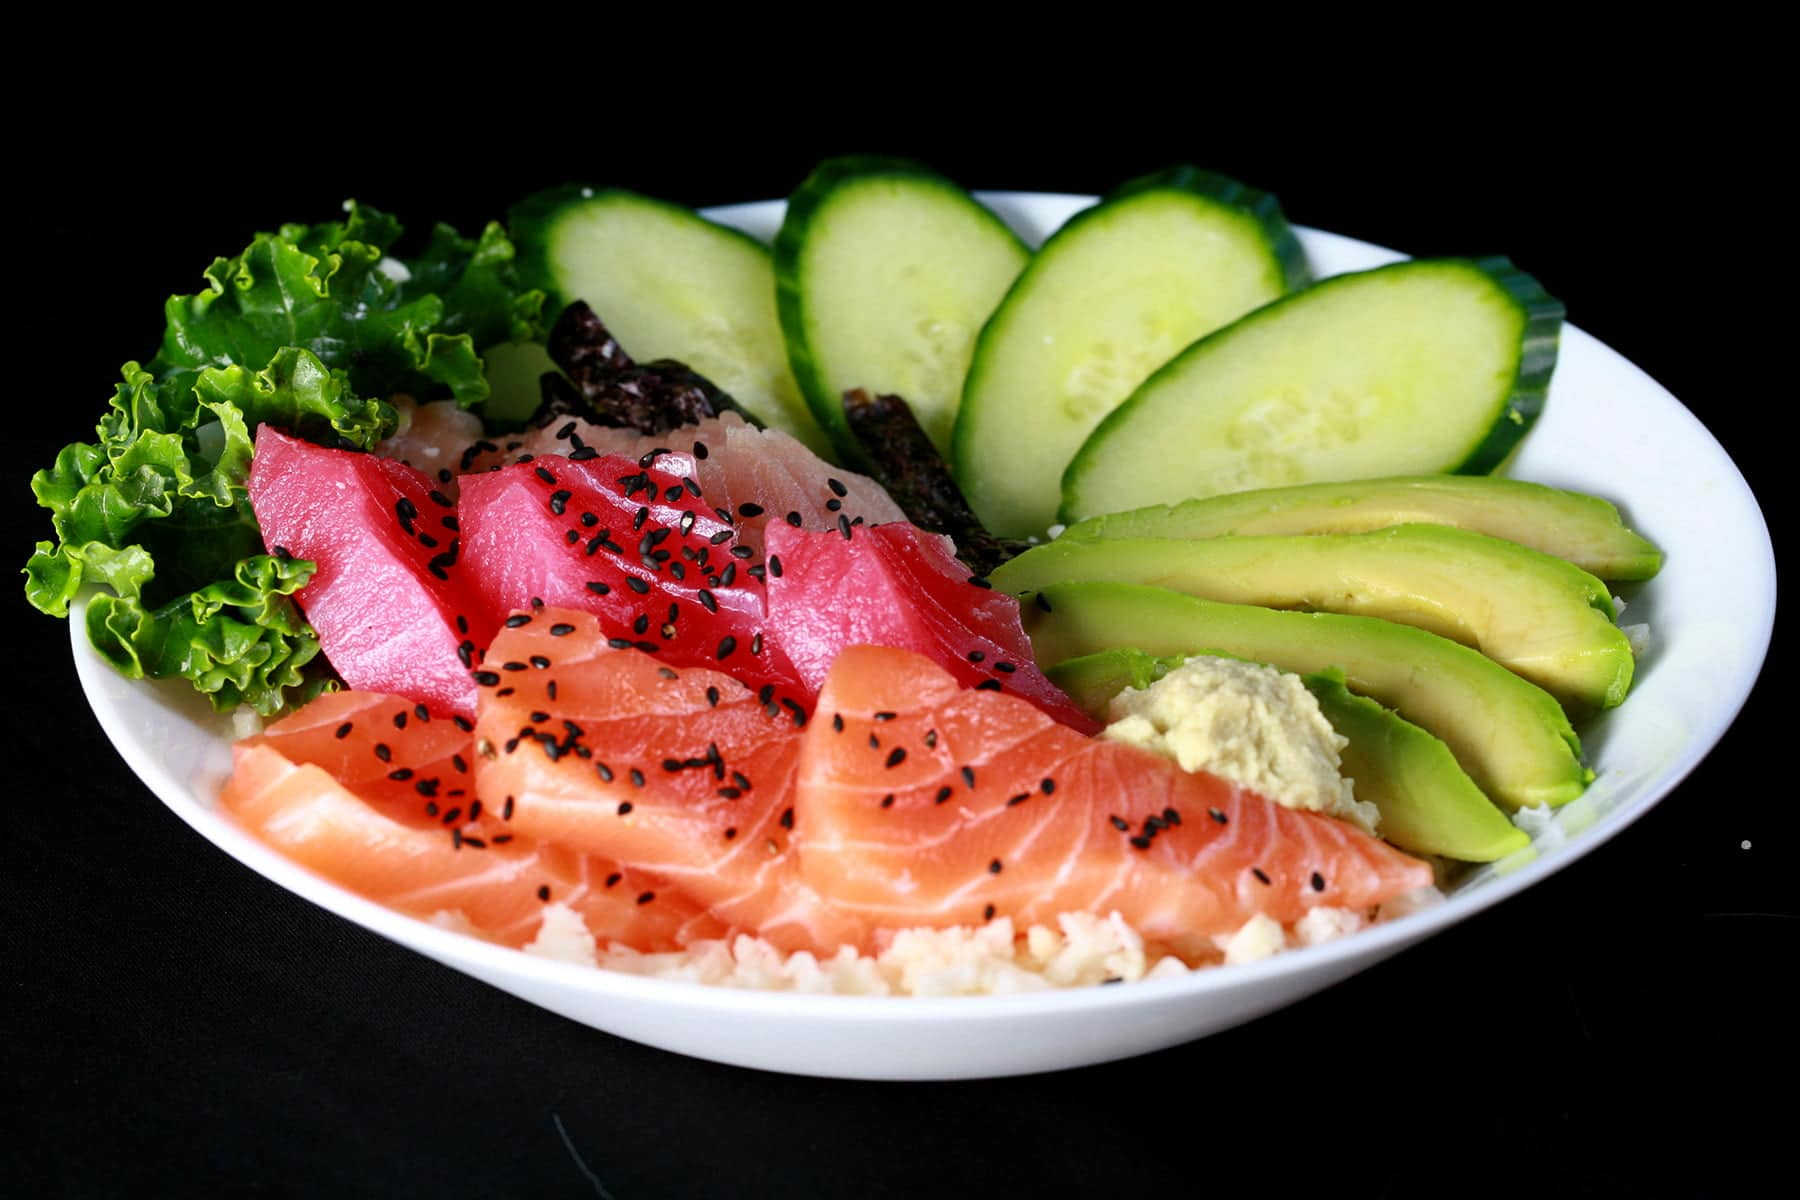 A shallow bowl with various cuts of fish - salmon, tuna, and snapper - as well as some veggies.  It is all arranged on top of riced cauliflower.